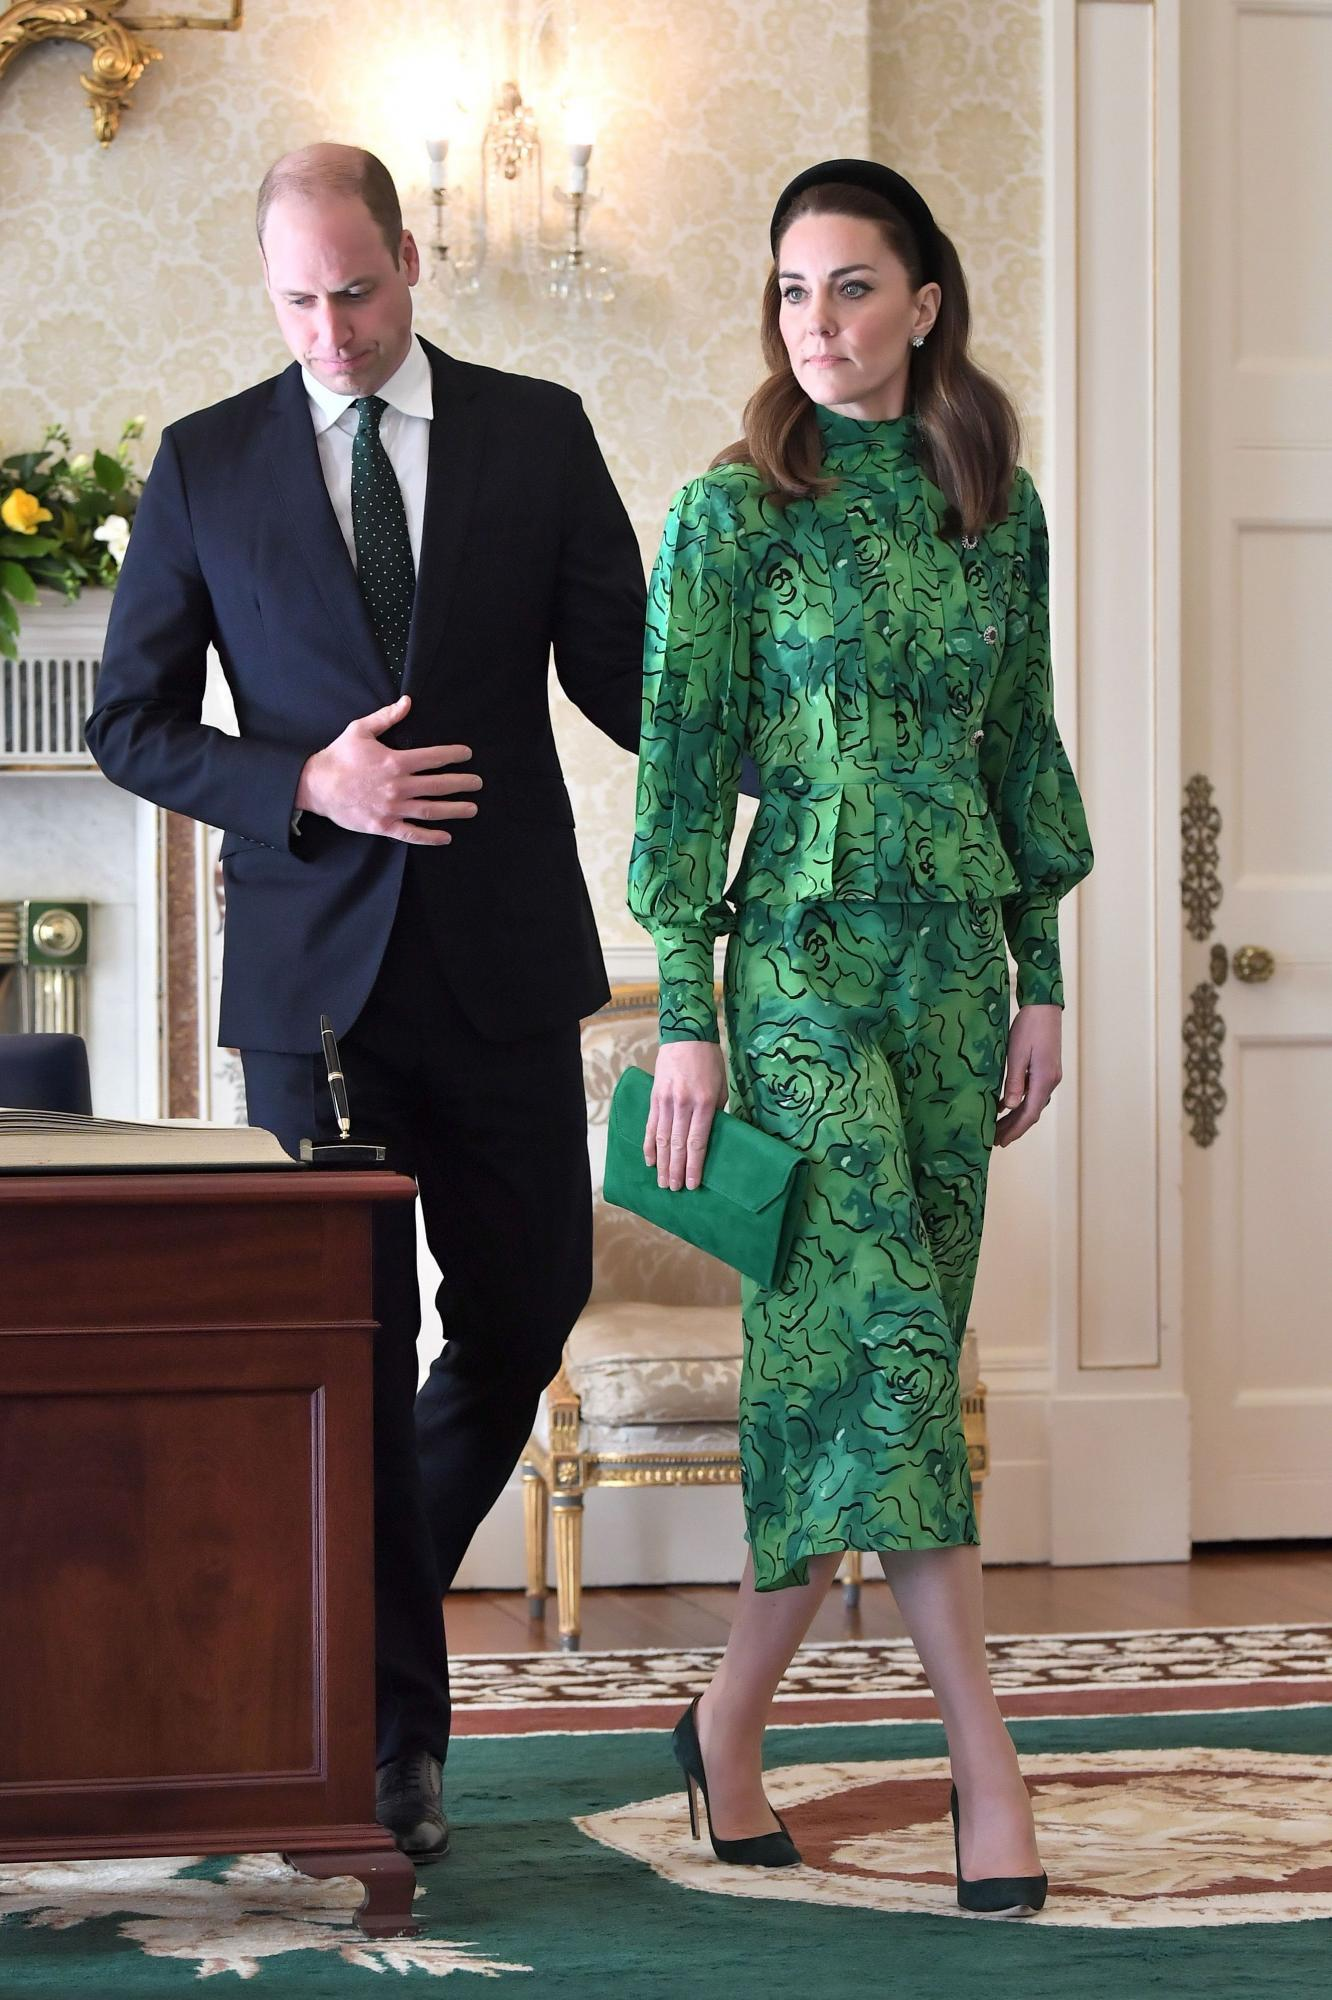 Prince William and Kate Middleton during the recent Ireland visit